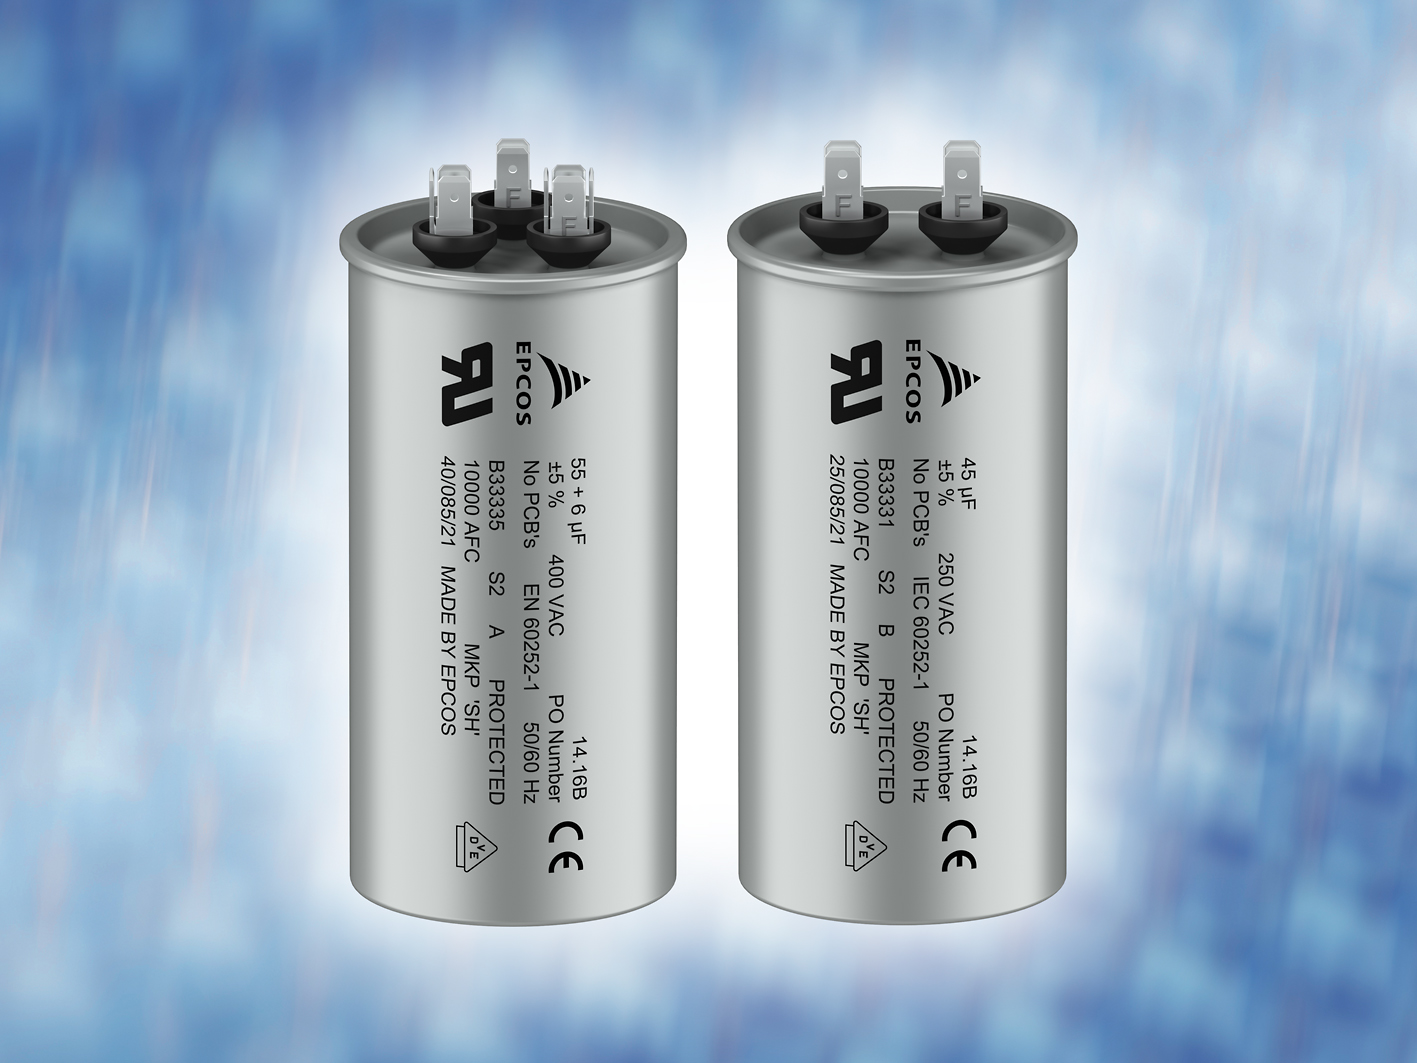 TDK's robust AC capacitors tout long lifespan